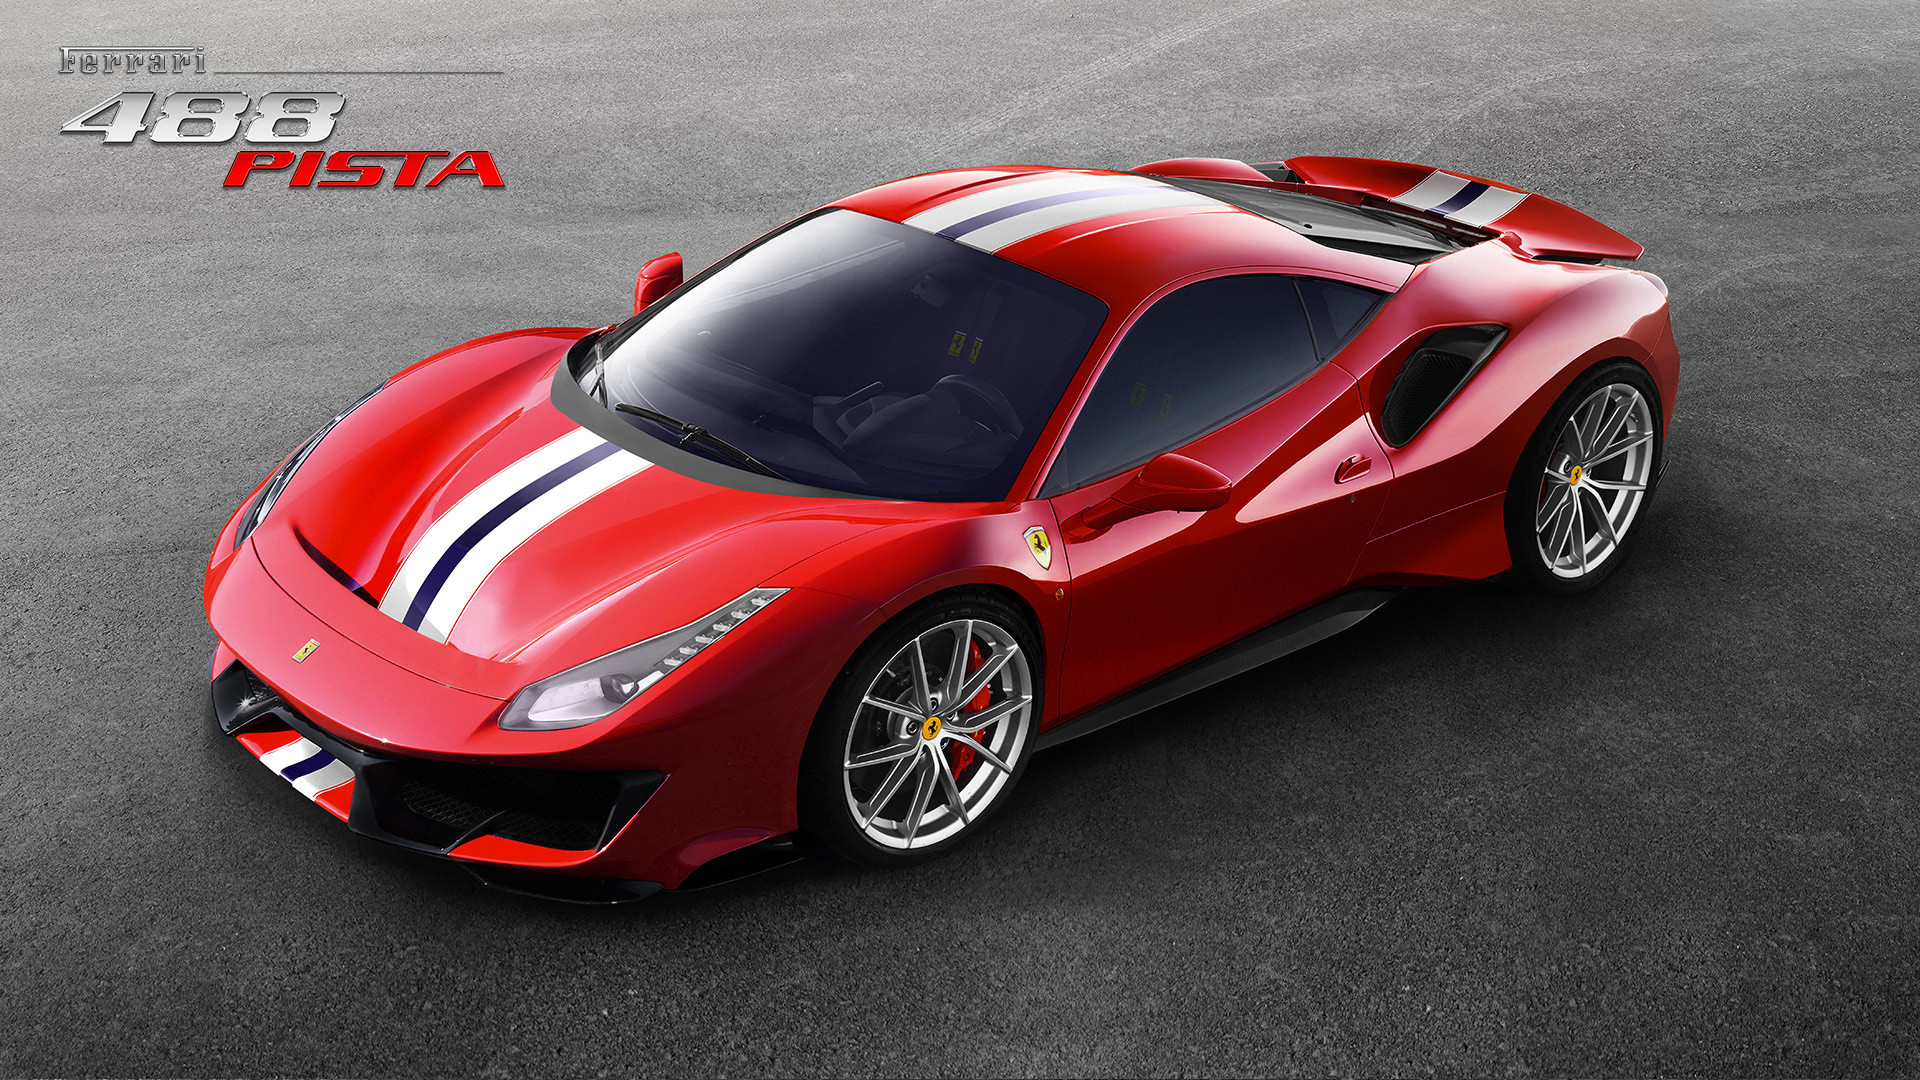 Vic Carbon Fibre Wheel Manufacturer Partners With New Ferrari Supercar Manufacturers Monthly